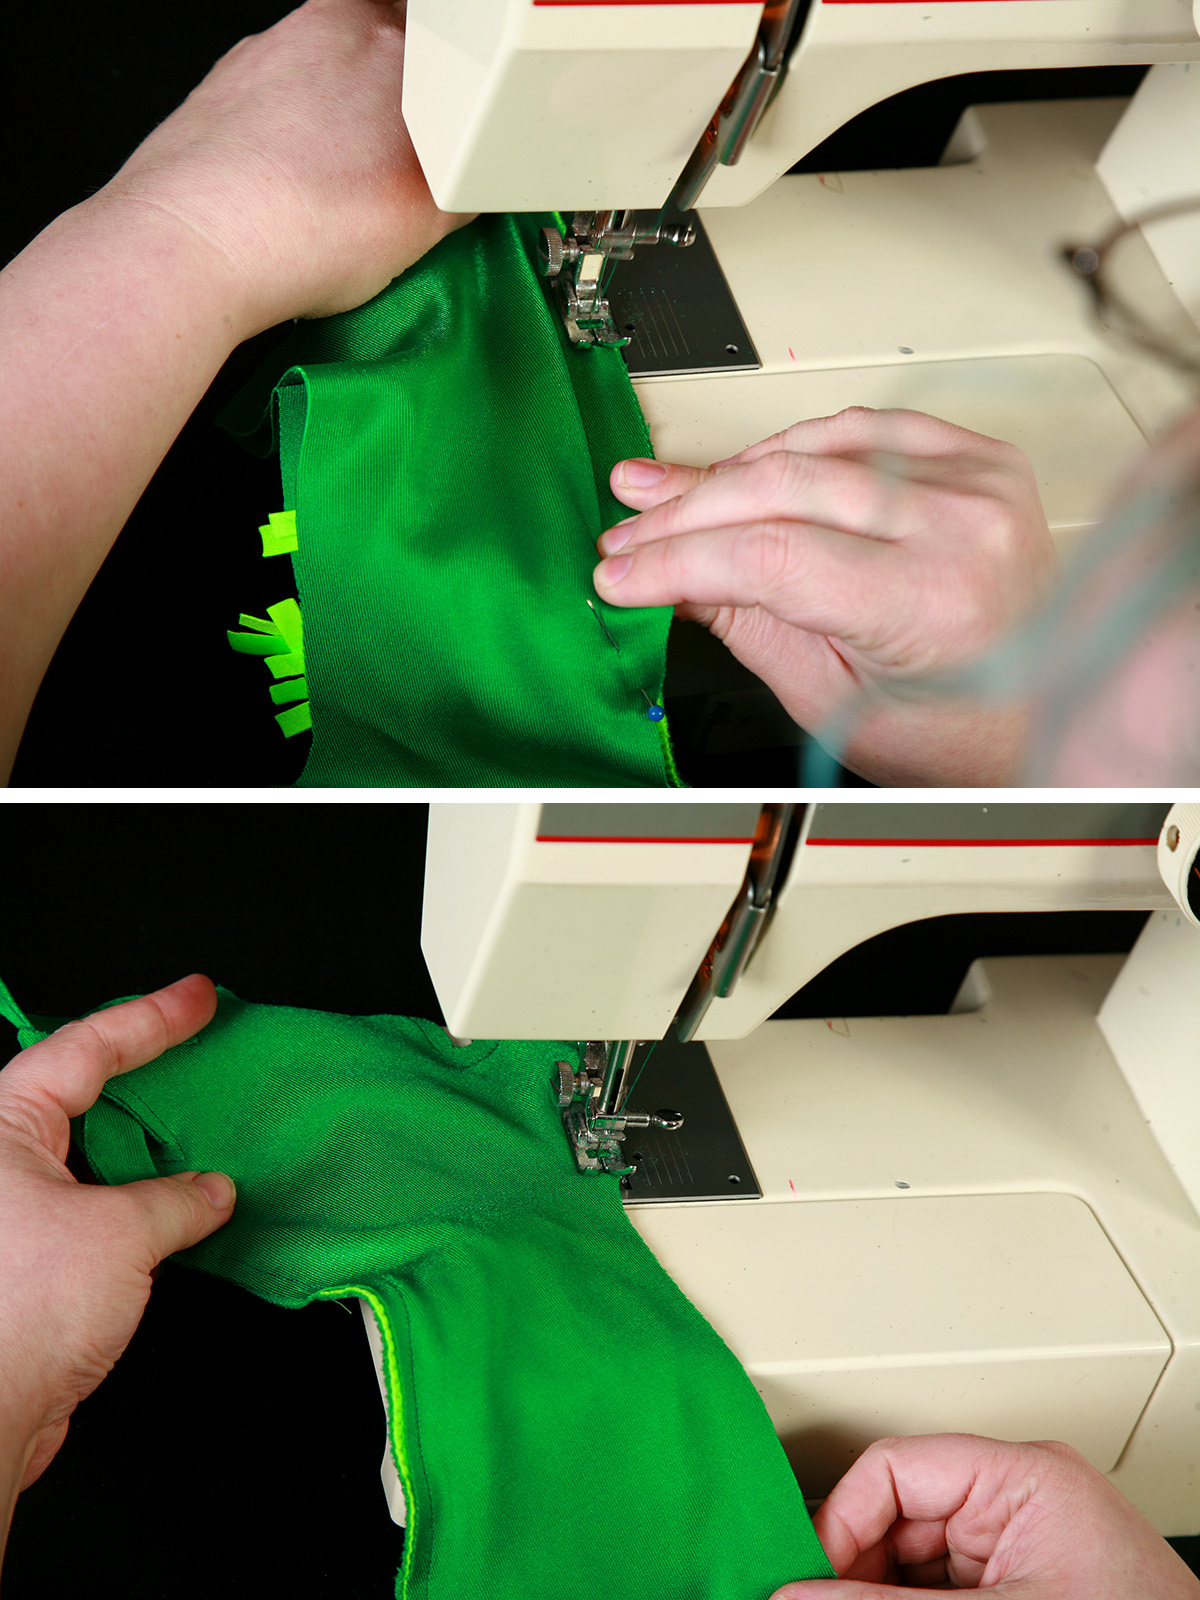 A two part compilatiom image showing a dark green glove being sewn in a sewing machine.